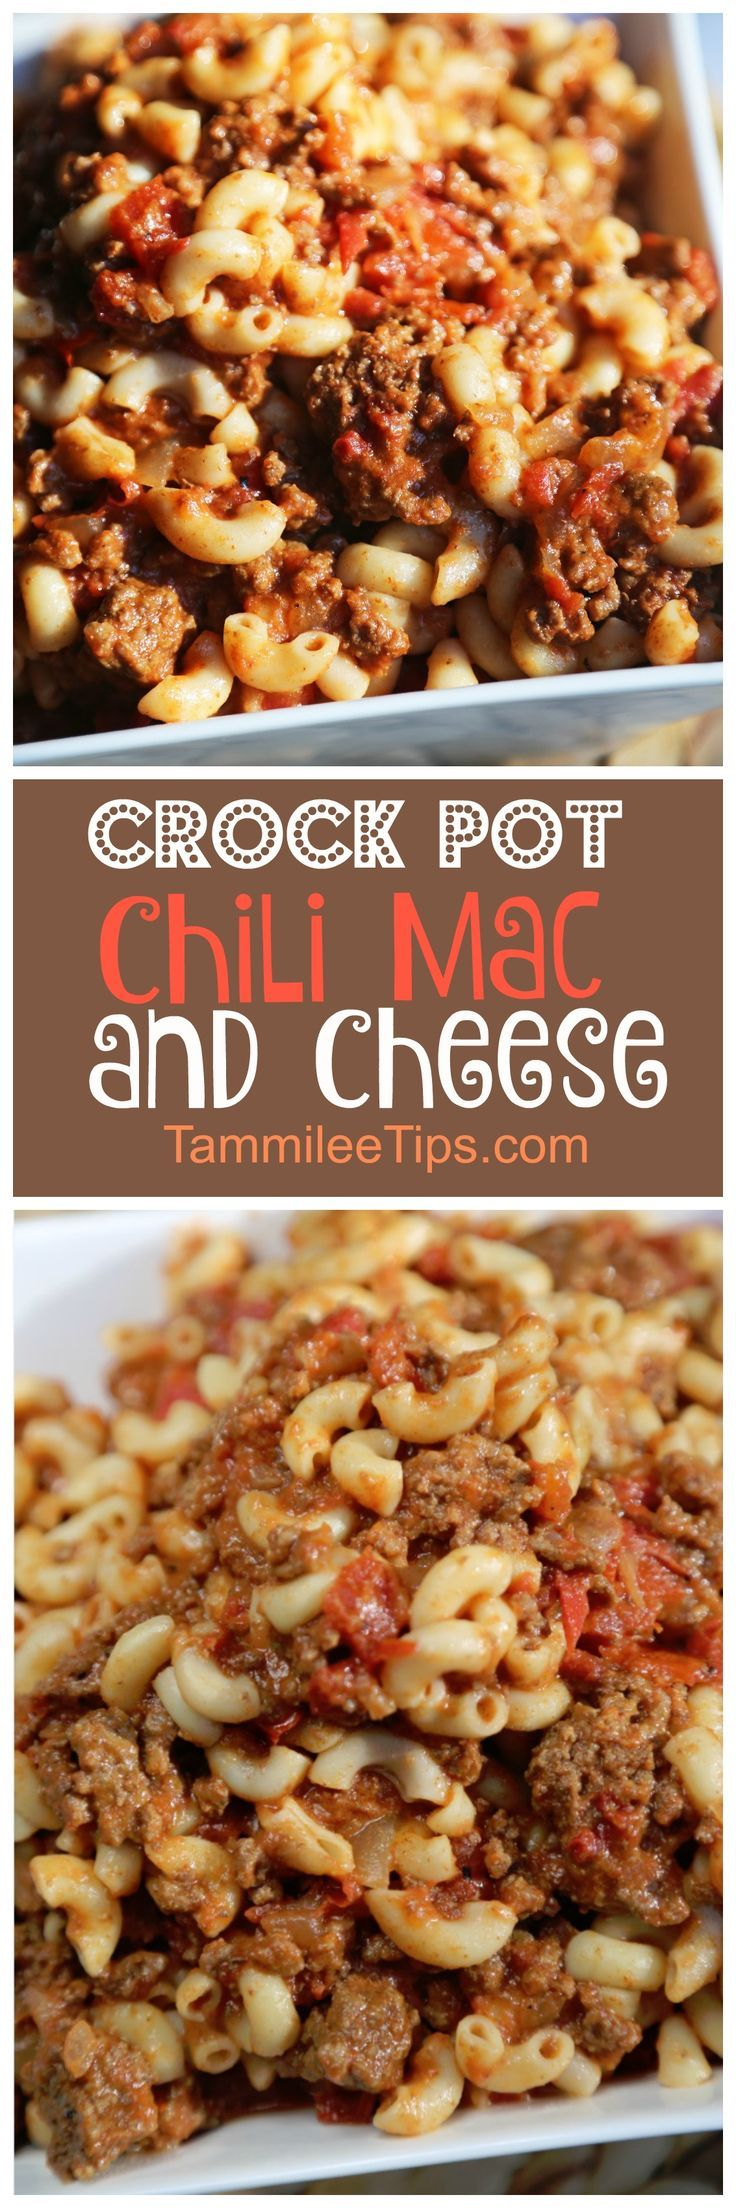 Simple, easy to make Crock Pot Chili Mac and Cheese Recipe! The slow cooker does all the work! Perfect for family dinners! Save your dishes and use the crockpot!  Hamburger, Pasta, Chili and more makes this a delicious recipe everyone will love!  via @tam